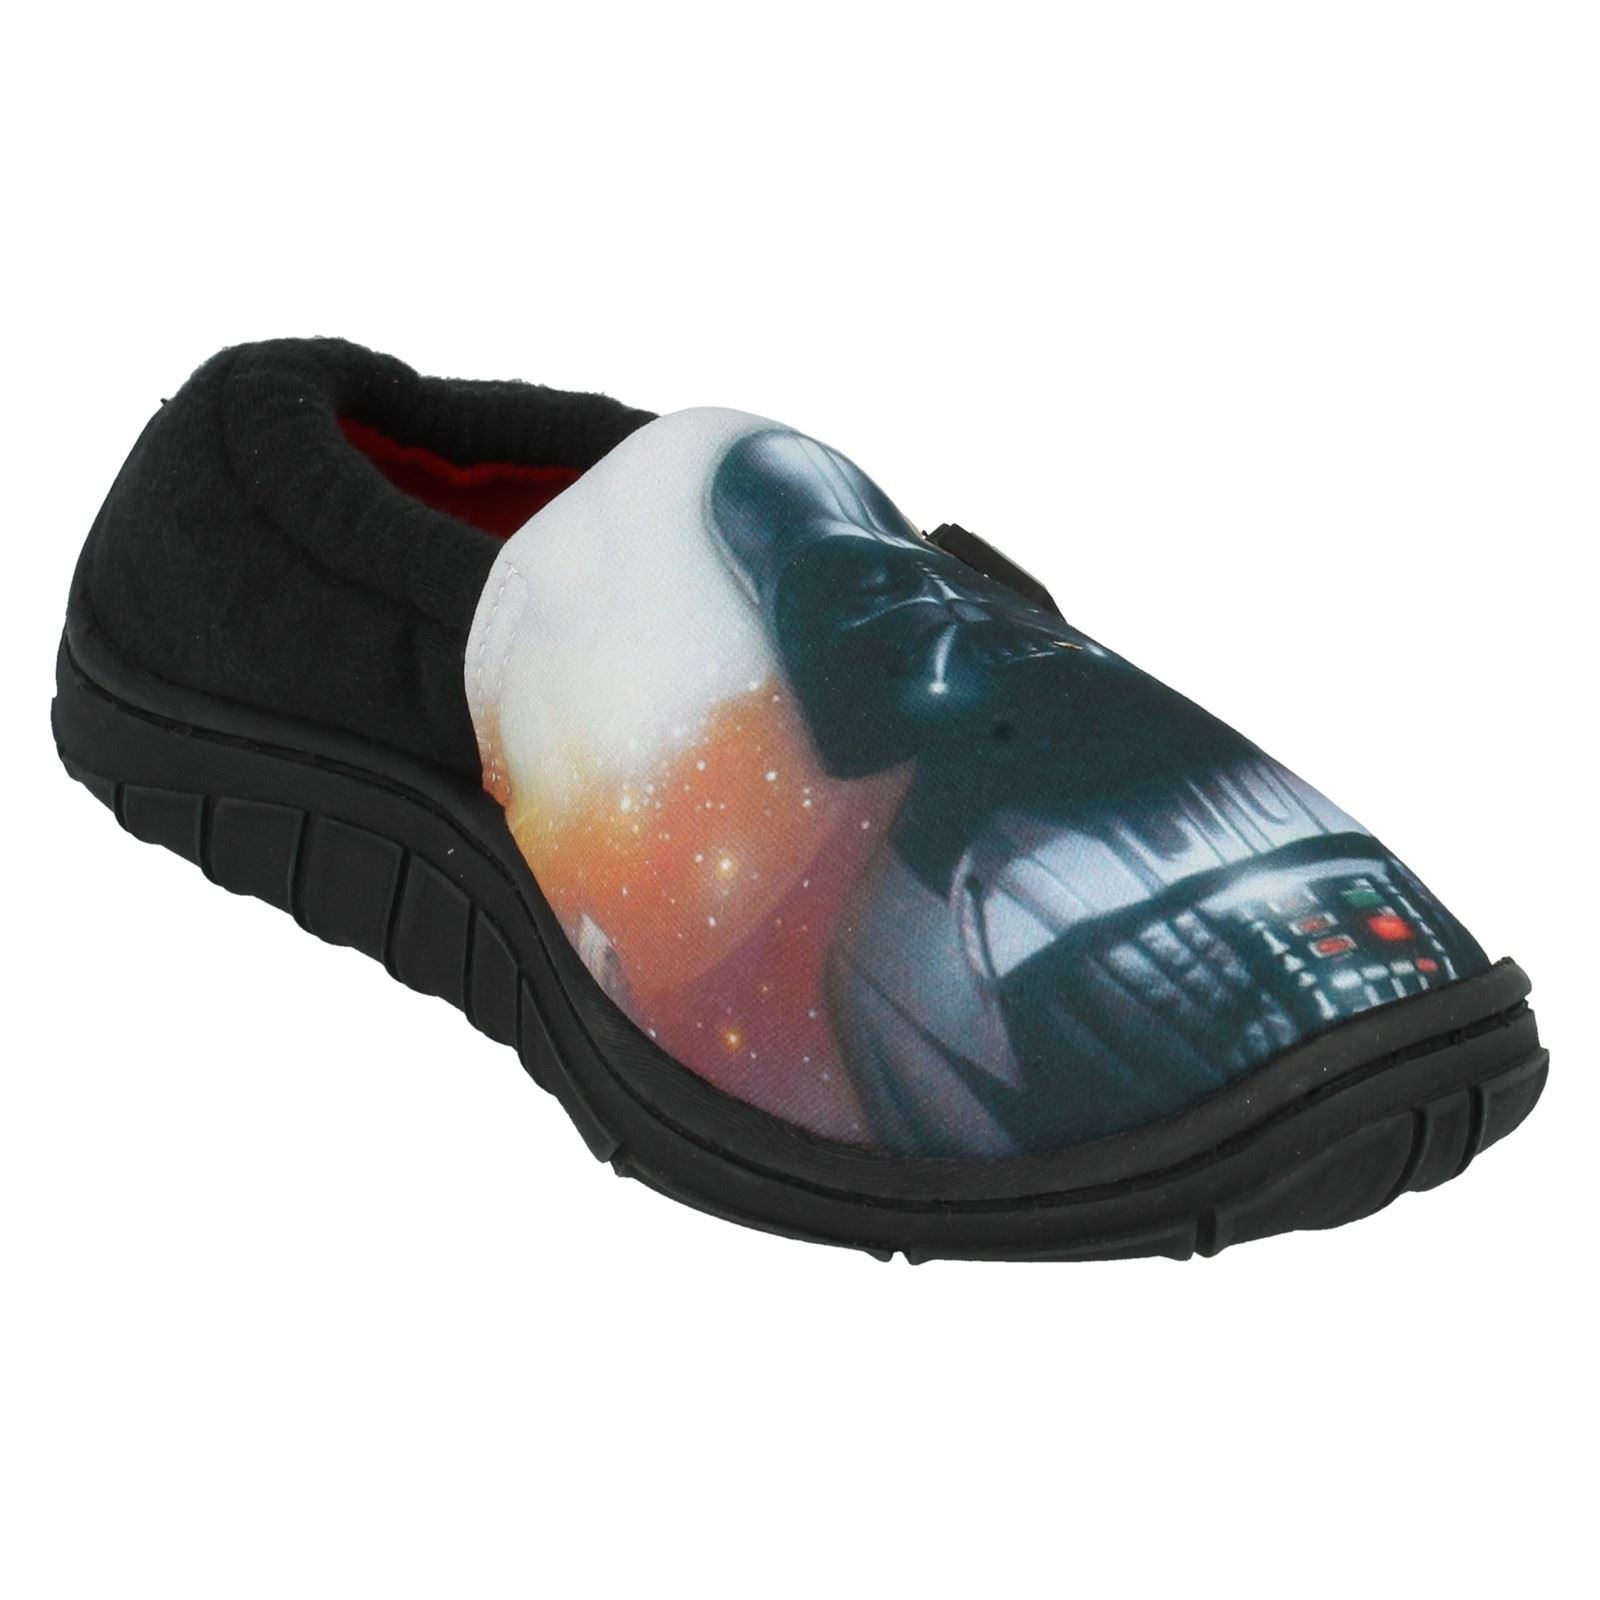 Darth Vader Juniors Slipper Etiqueta-Disney